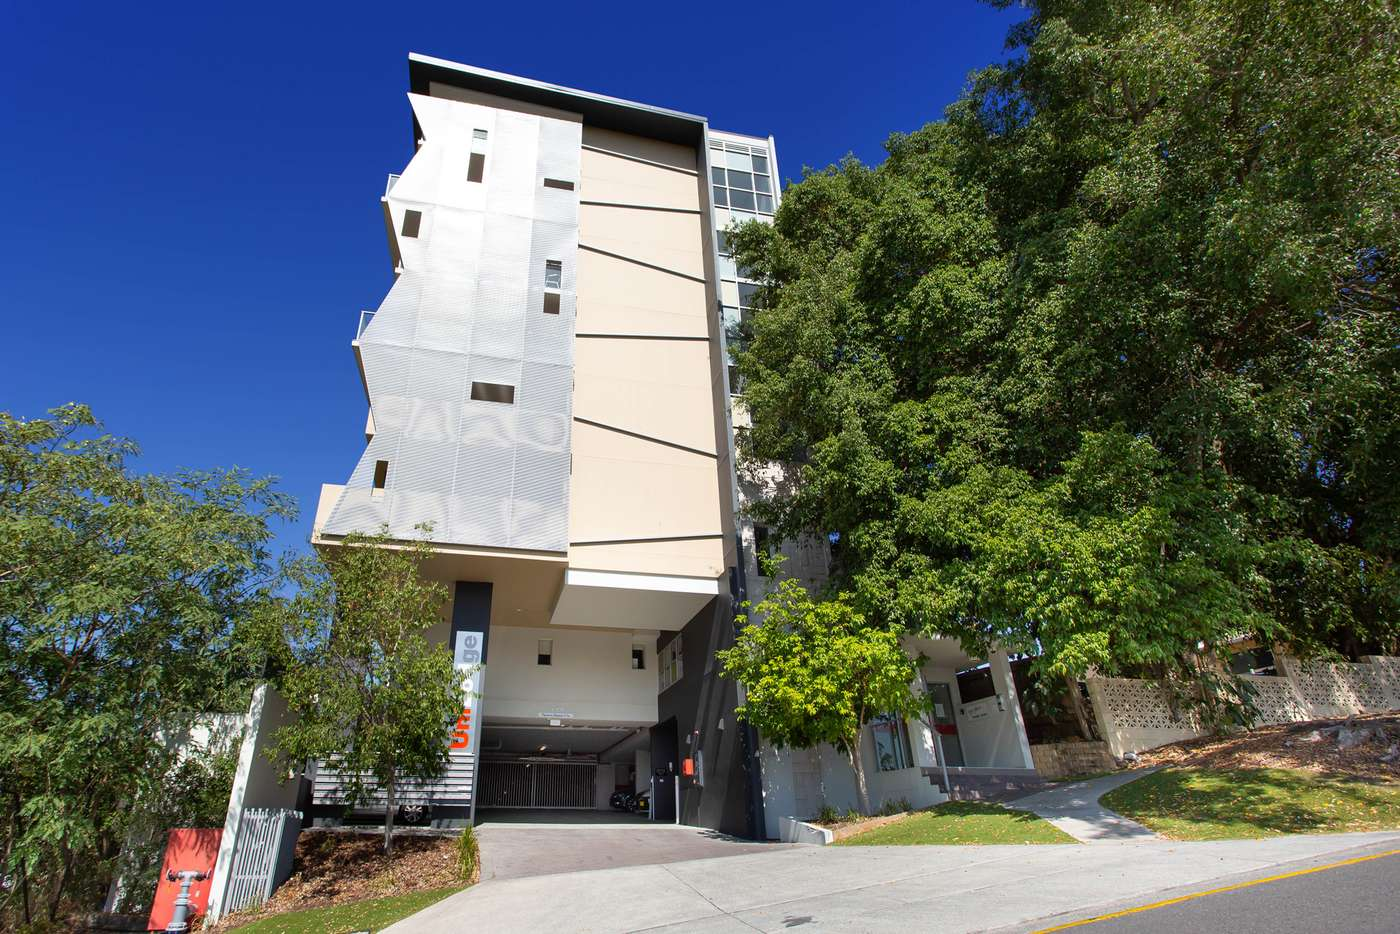 Main view of Homely apartment listing, 47/48 Walcott Street, St Lucia QLD 4067